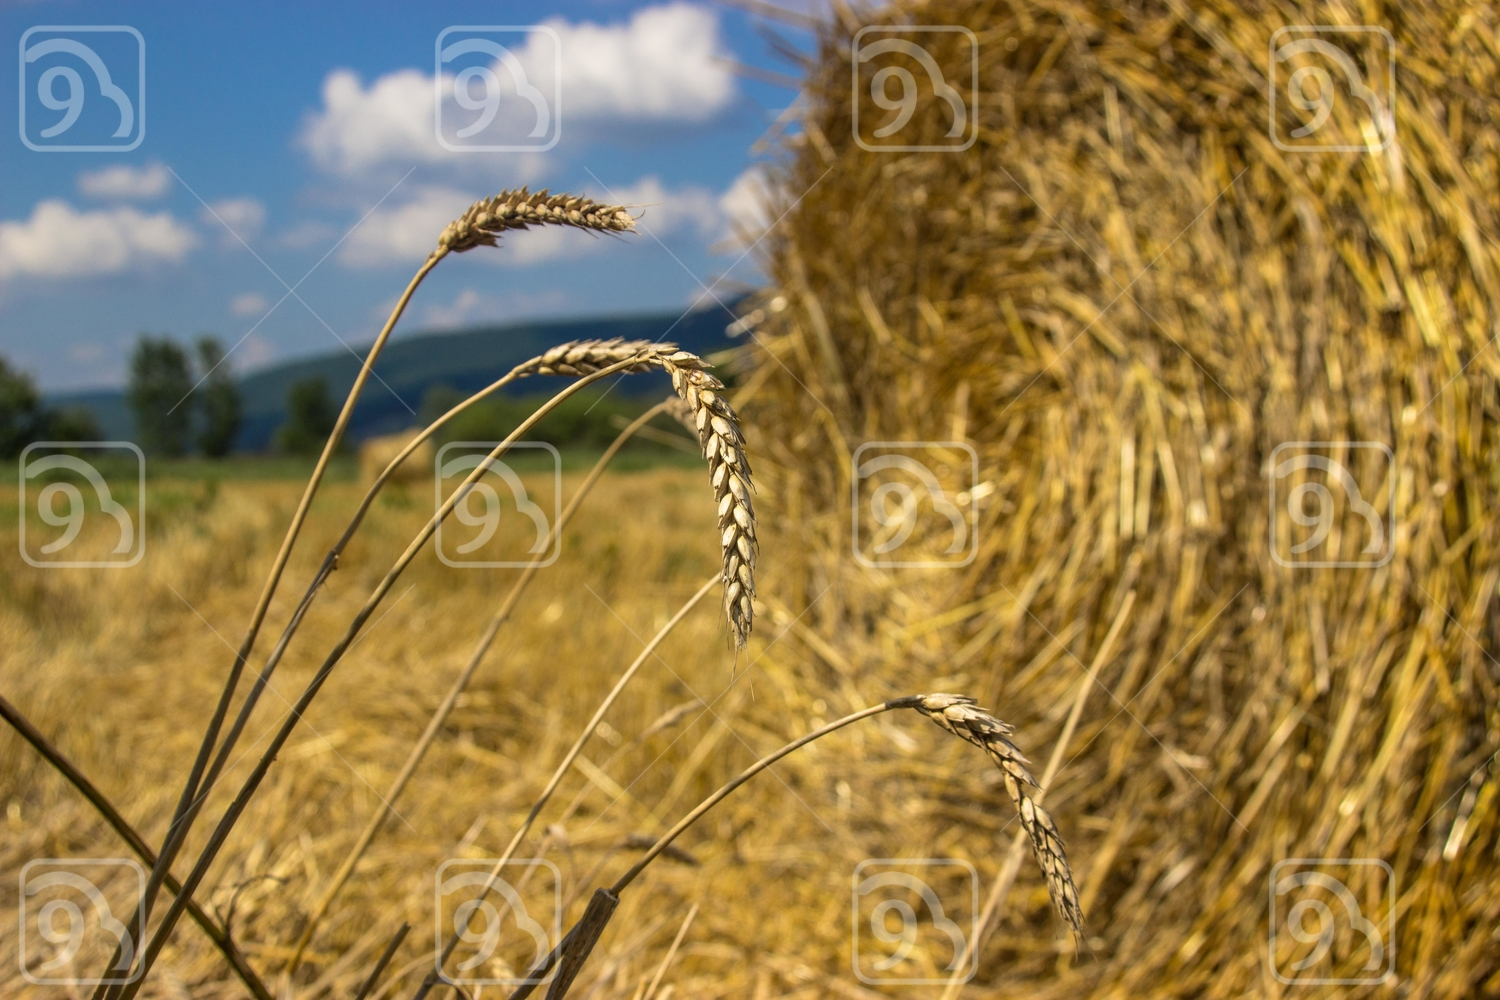 Spica of wheat